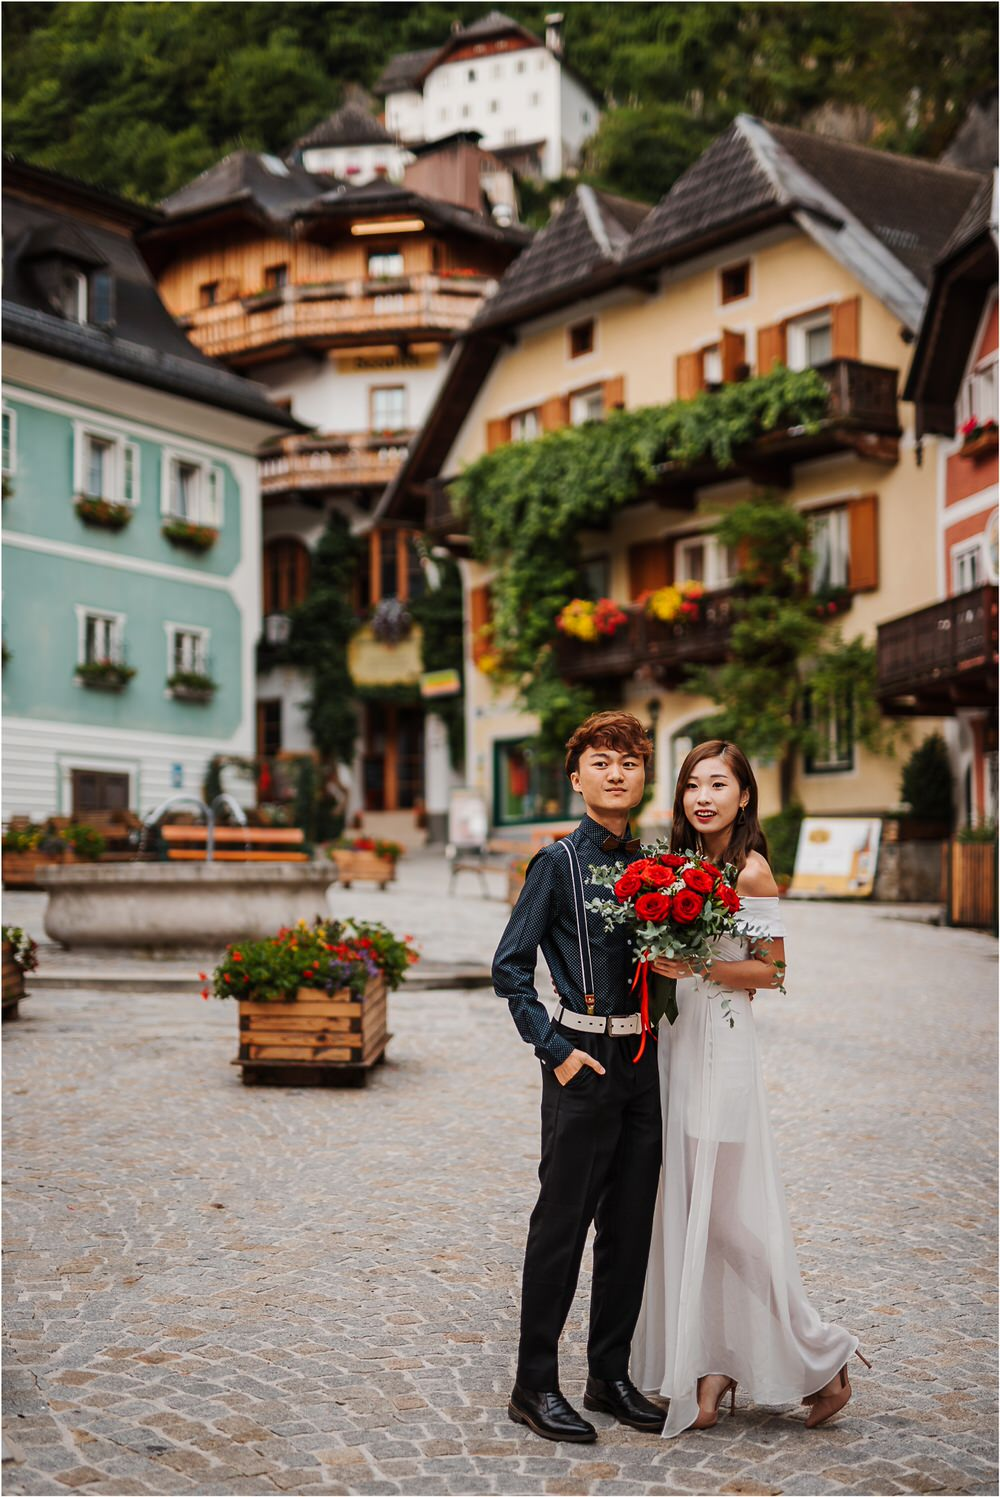 hallstatt austria wedding engagement photographer asian proposal surprise photography recommended nature professional 0009.jpg